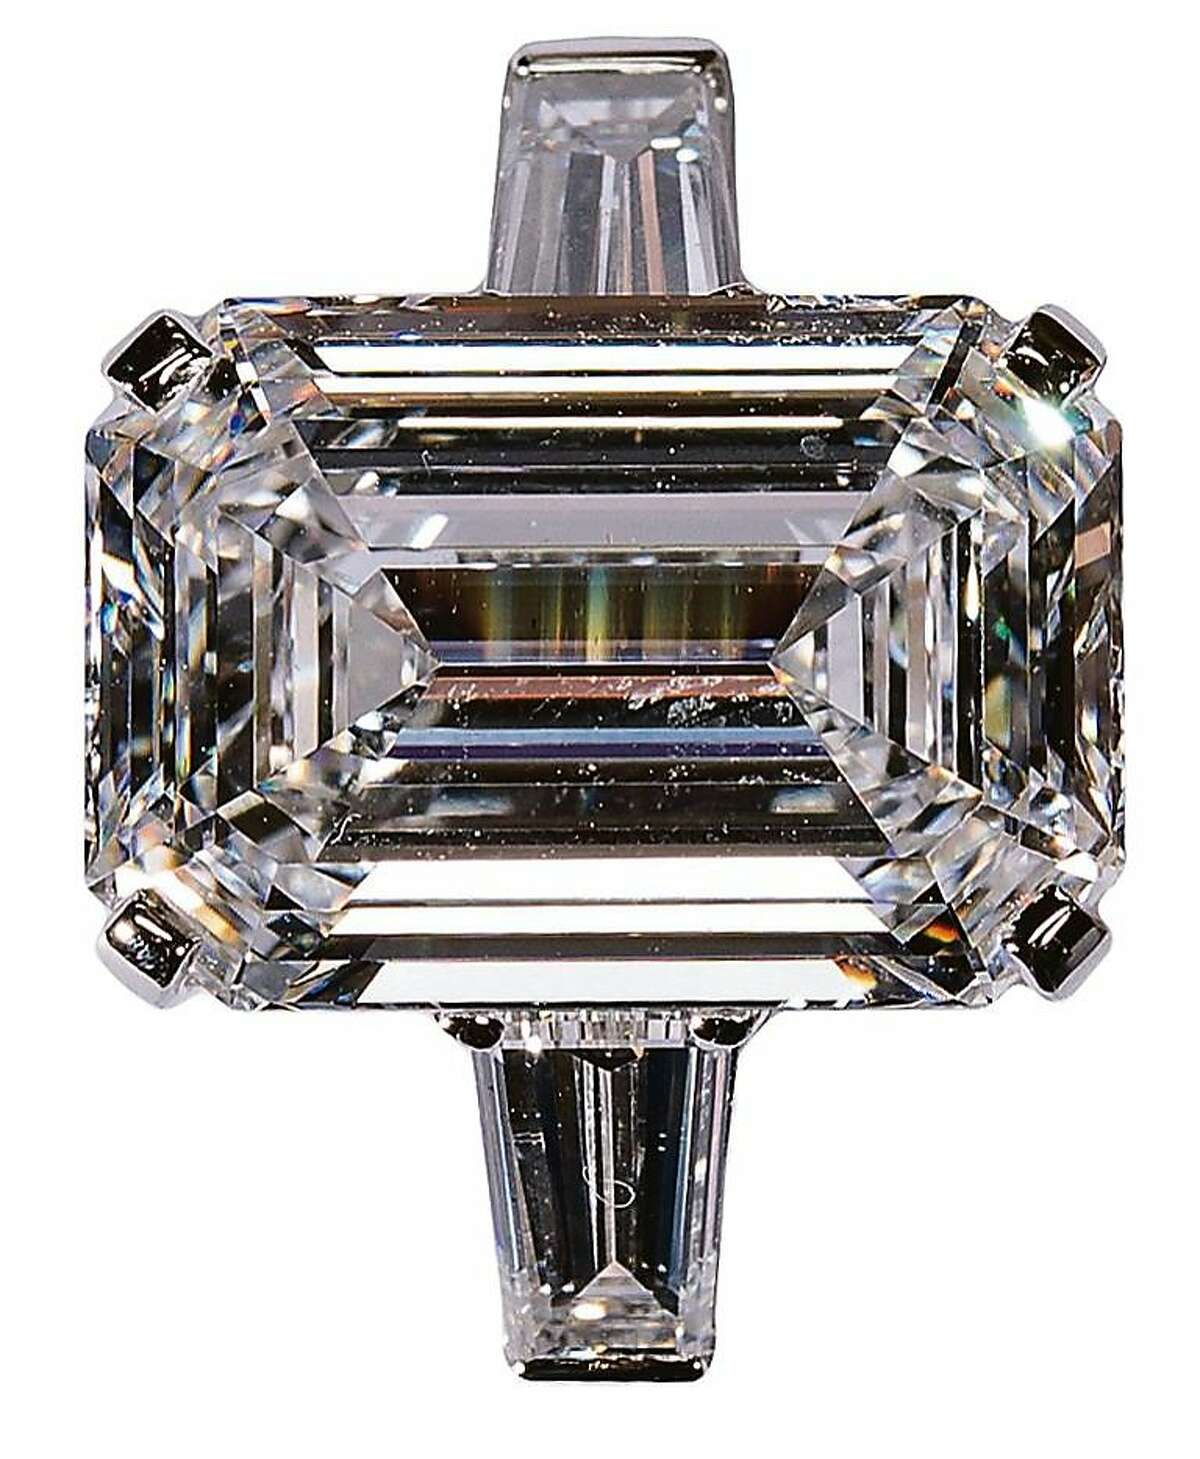 White emerald-cut 6.61-carat D-flawless diamond in platinum with white tapered baguettes, price upon request, Graff Diamonds, 237 Post St.